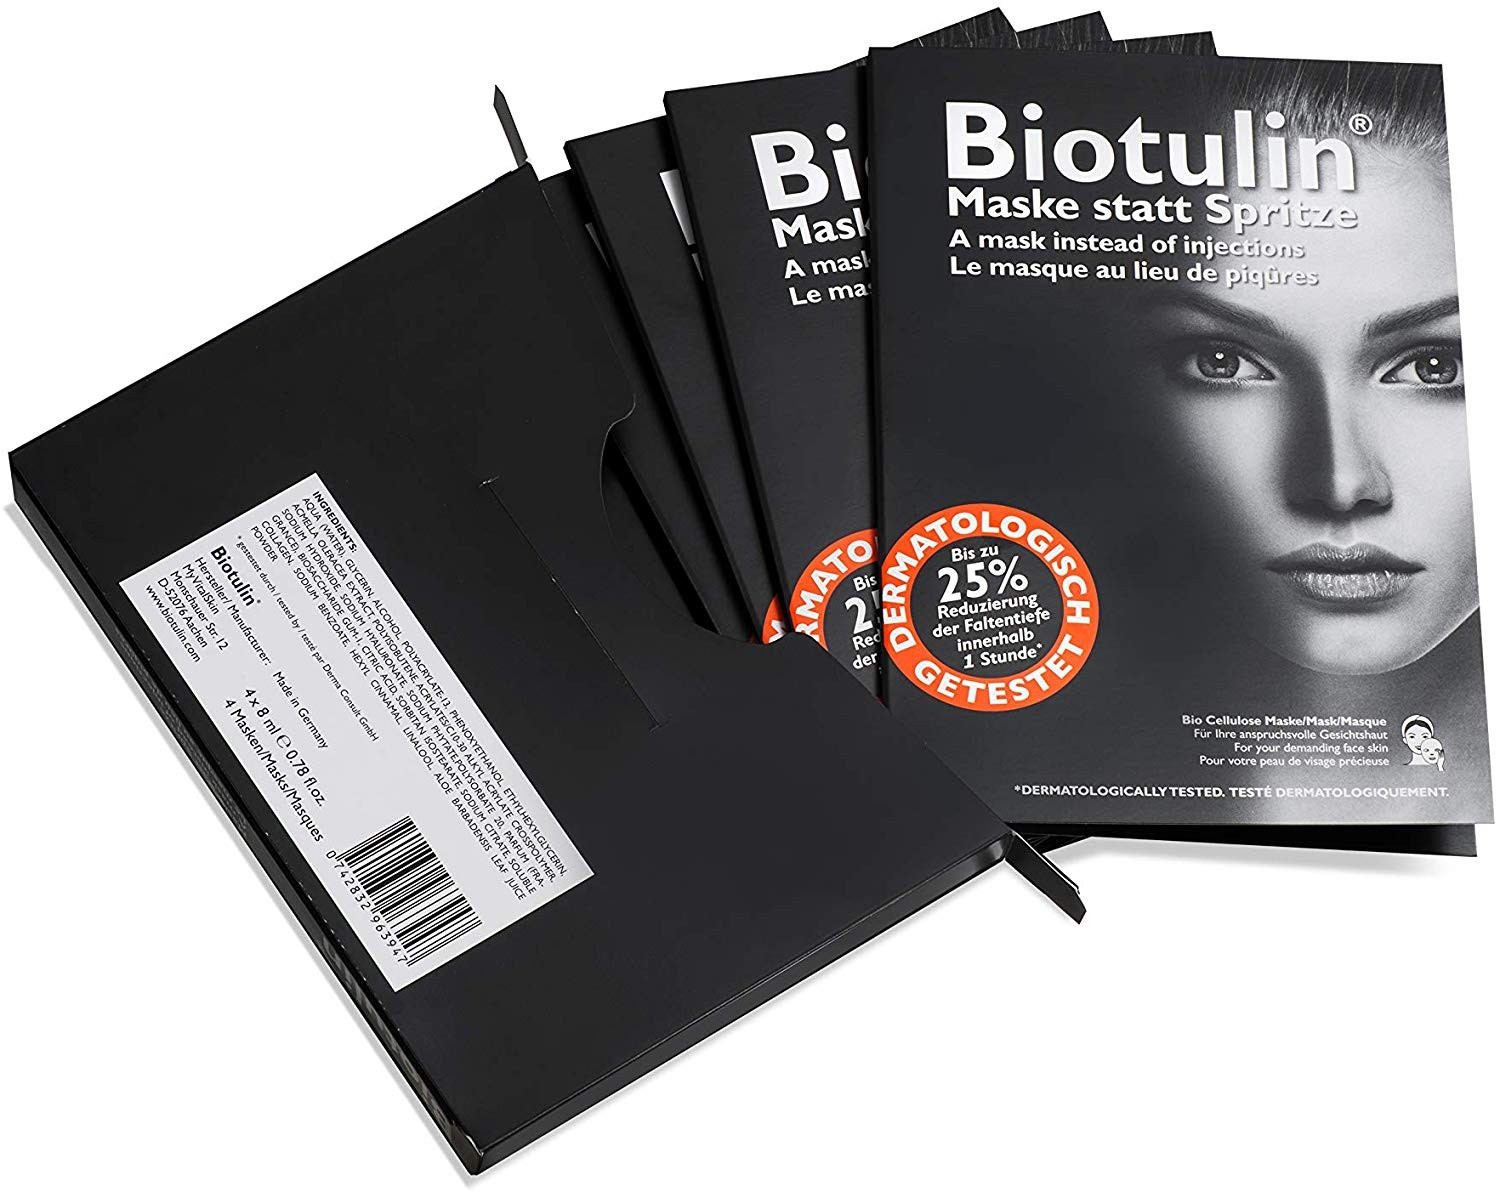 BIOTULIN BIO CELLULOSE MASK PACK OF 4PCS